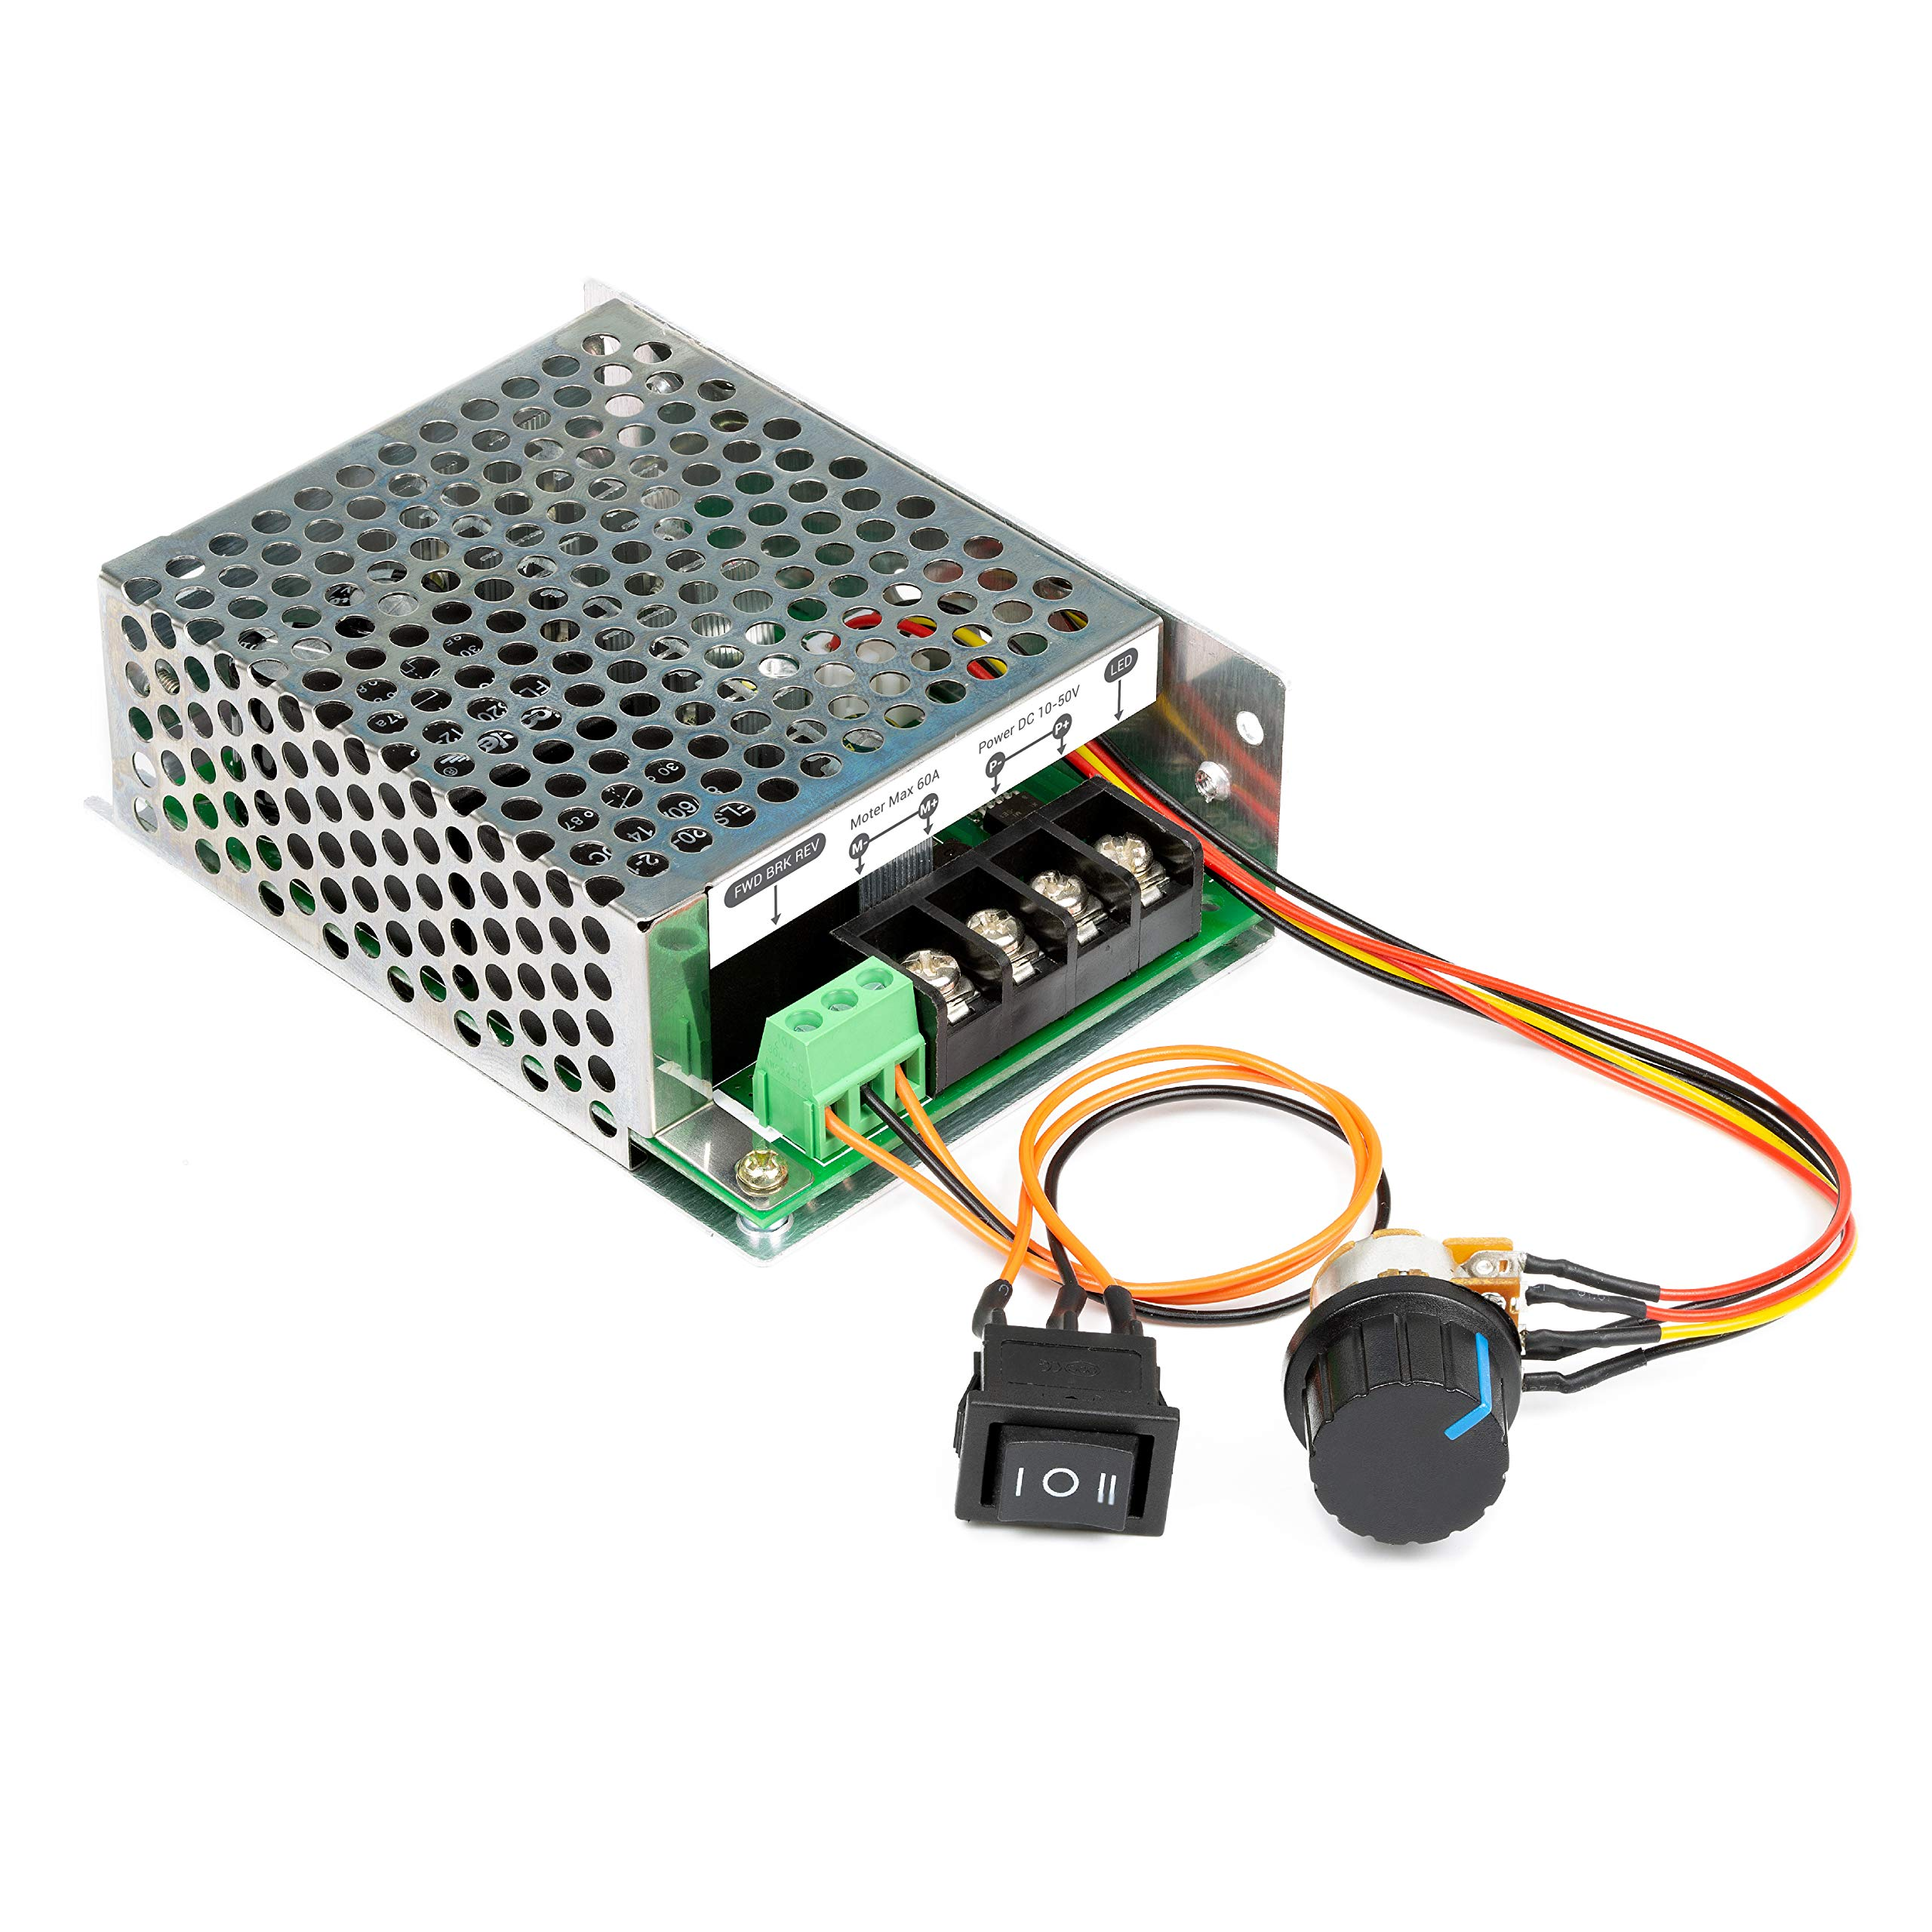 UCTRONICS Stepless DC Motor Controller, DC 10-50V 60A, Motor Speed Controller with Adjustable Potentiometer, Forward-Brake-Reverse Switch and LED Indicator for DC Brush Motor,DC Lamps/LED